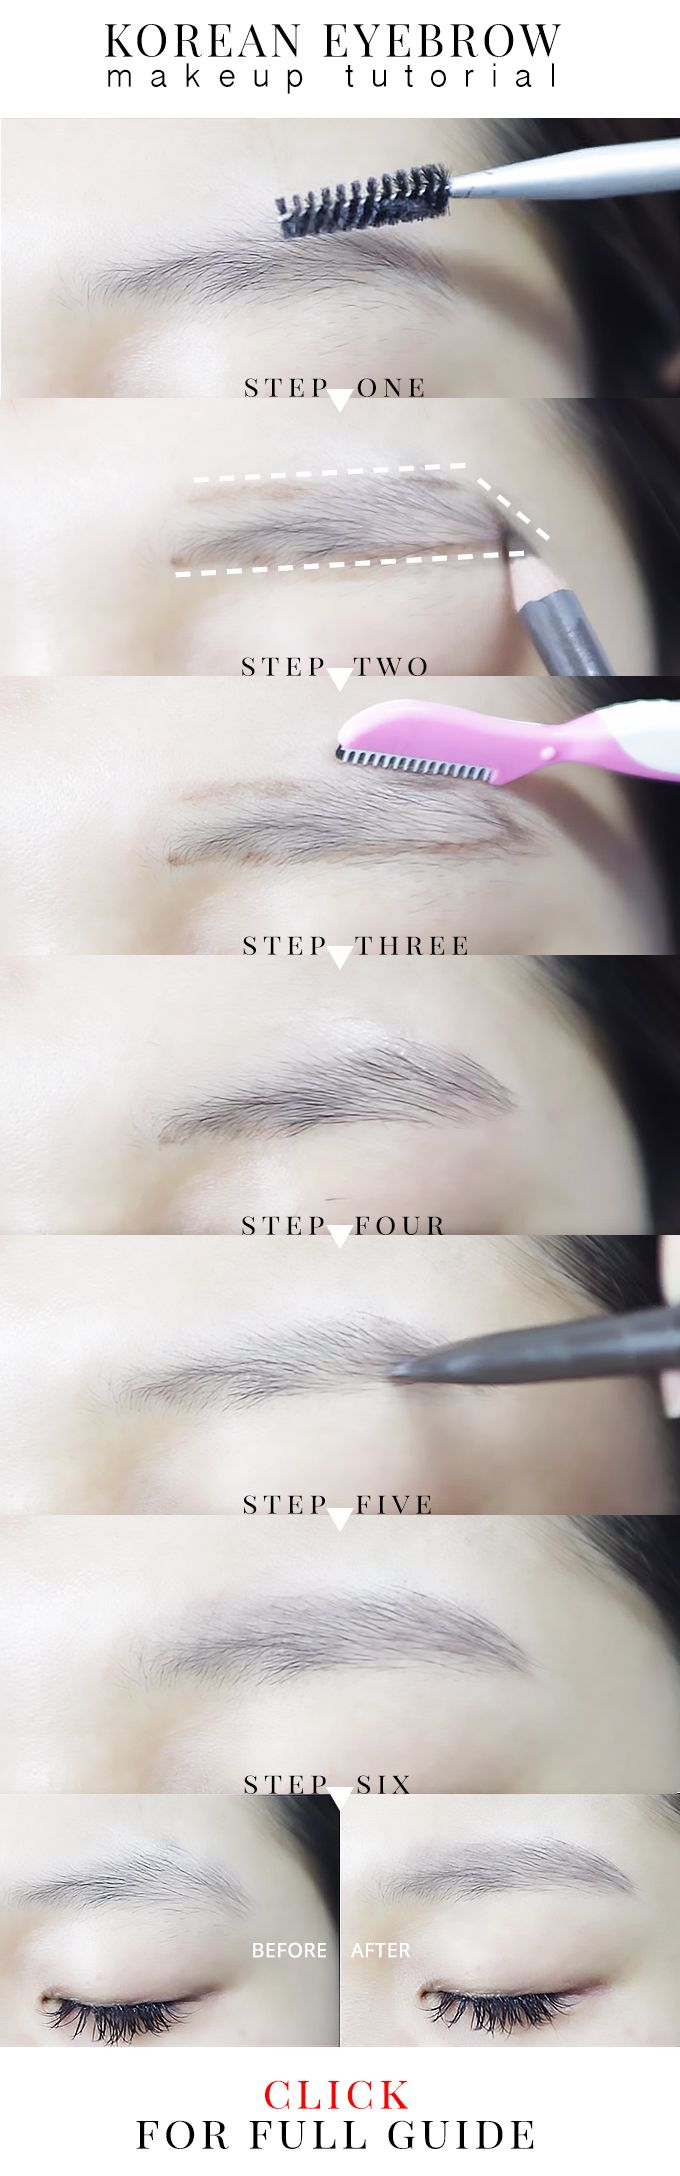 Have you been wonder, how to shape eyebrows naturally? Check this simple tutorial for beginners on how to shape or trim their eyebrows!